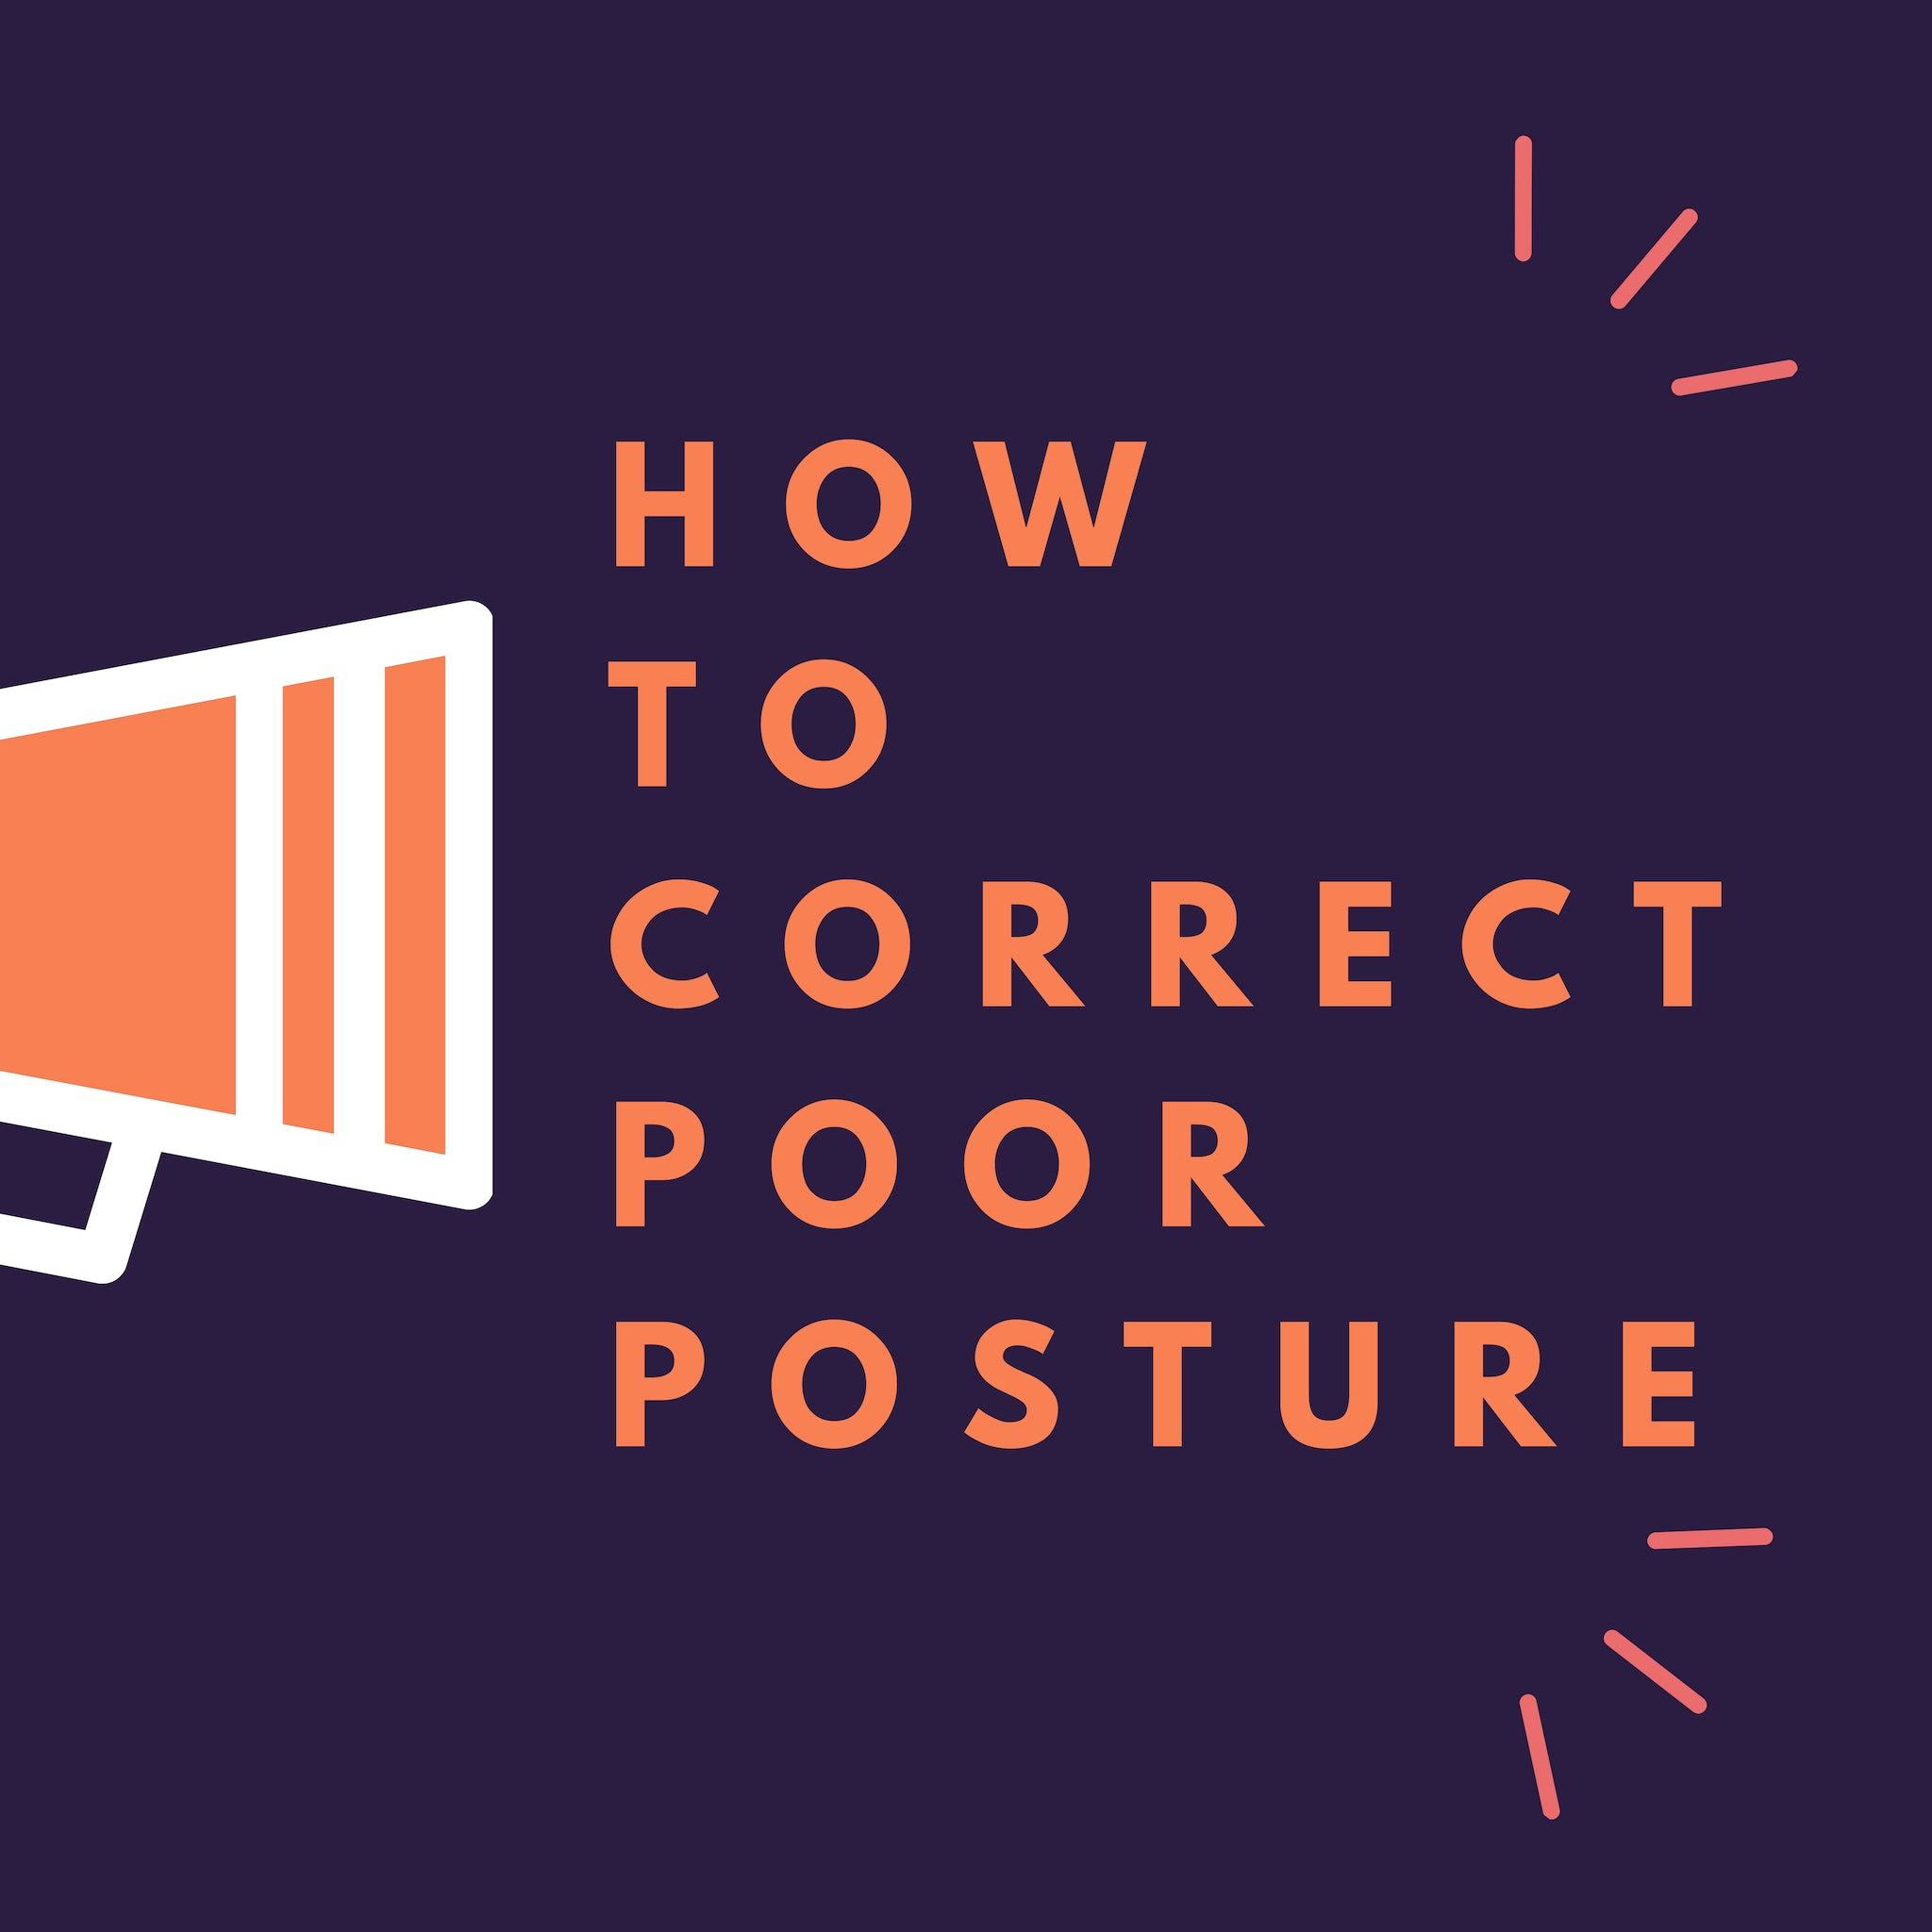 How To Correct Poor Posture From Taking A Toll On Your Body